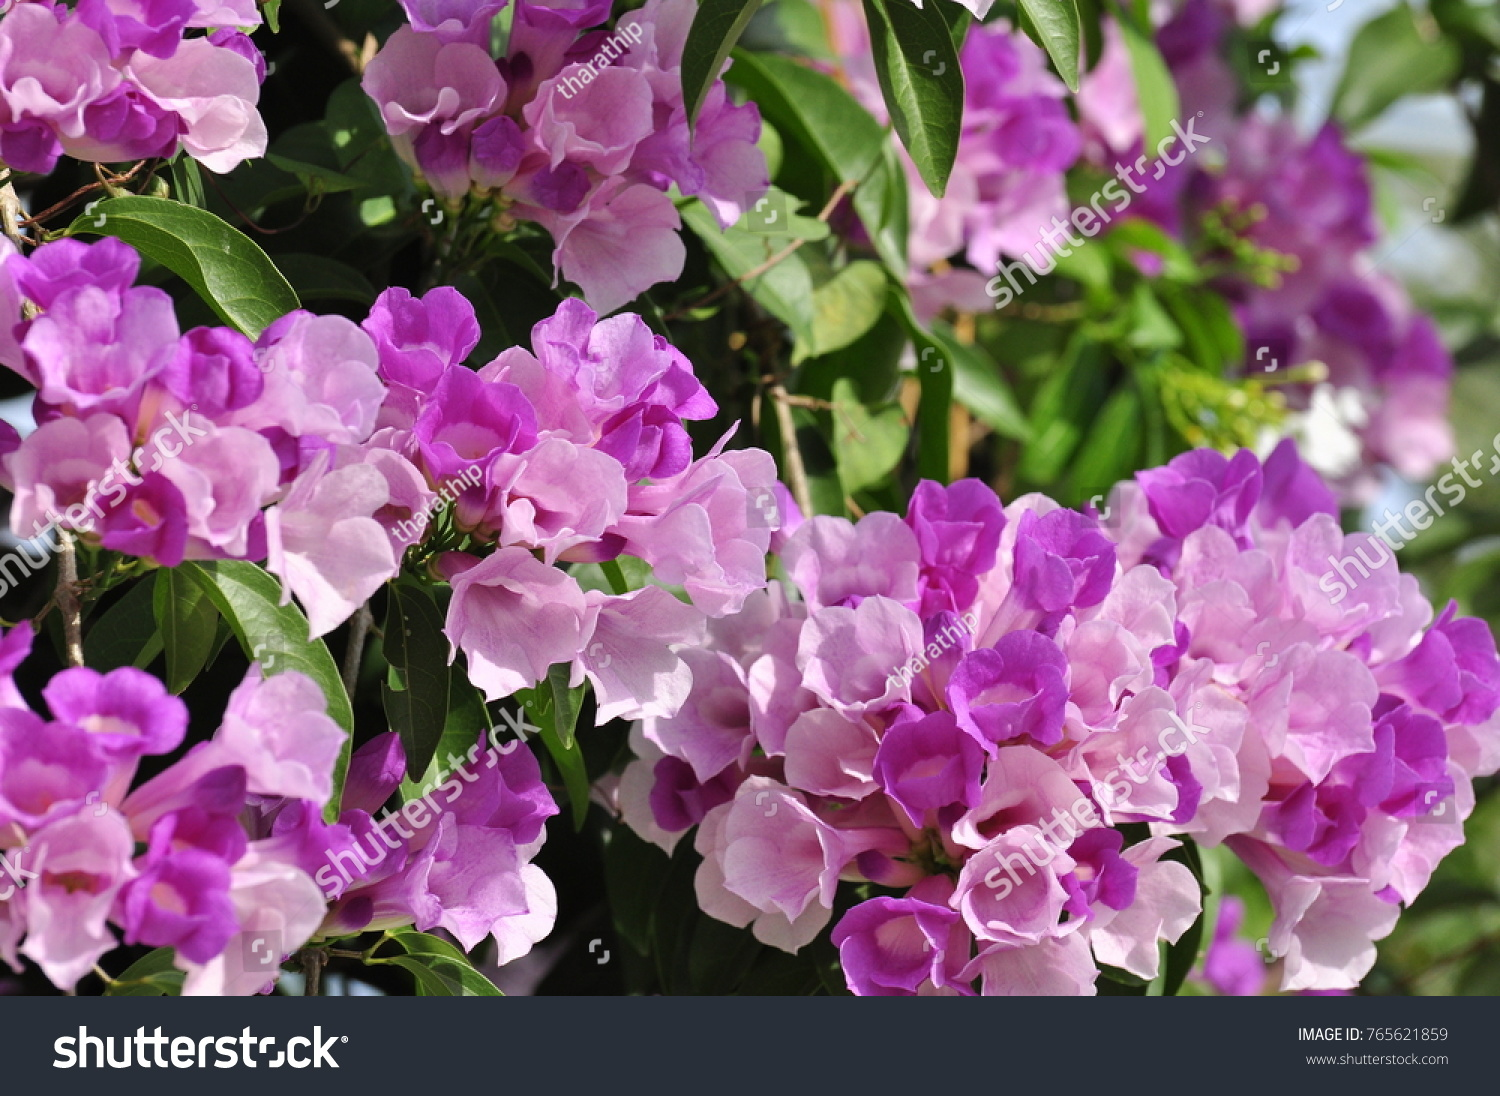 Colorful flowers in nature beautiful violet and pink flowers with id 765621859 izmirmasajfo